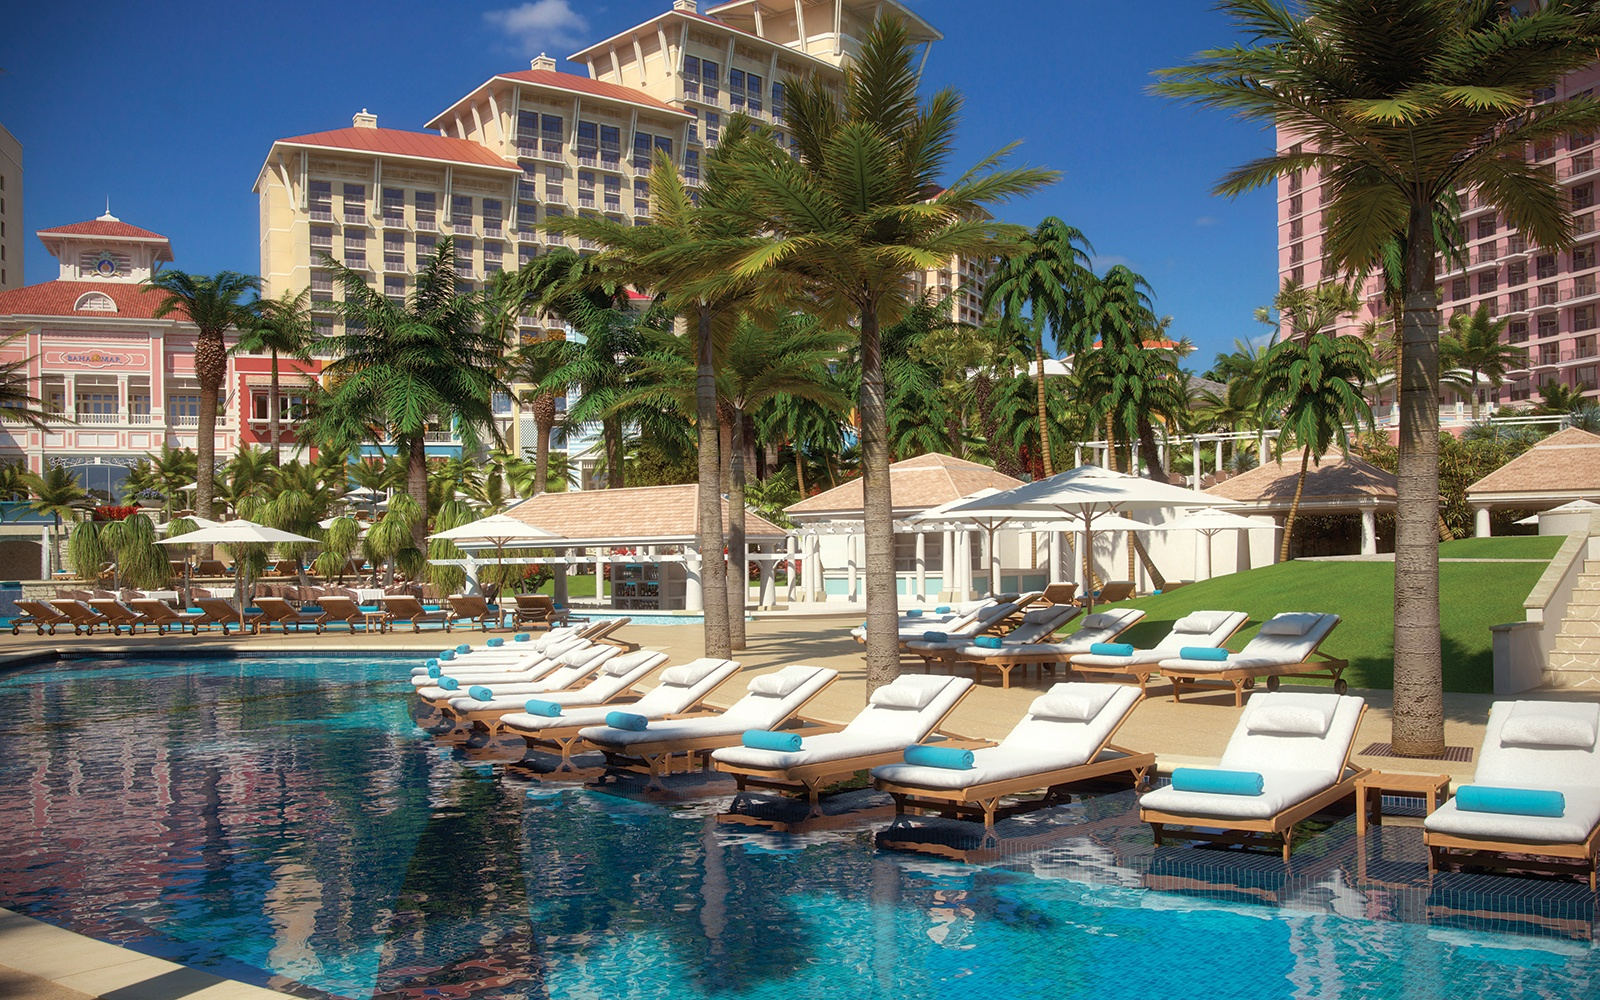 poolside at Baha Mar resort in Bahamas